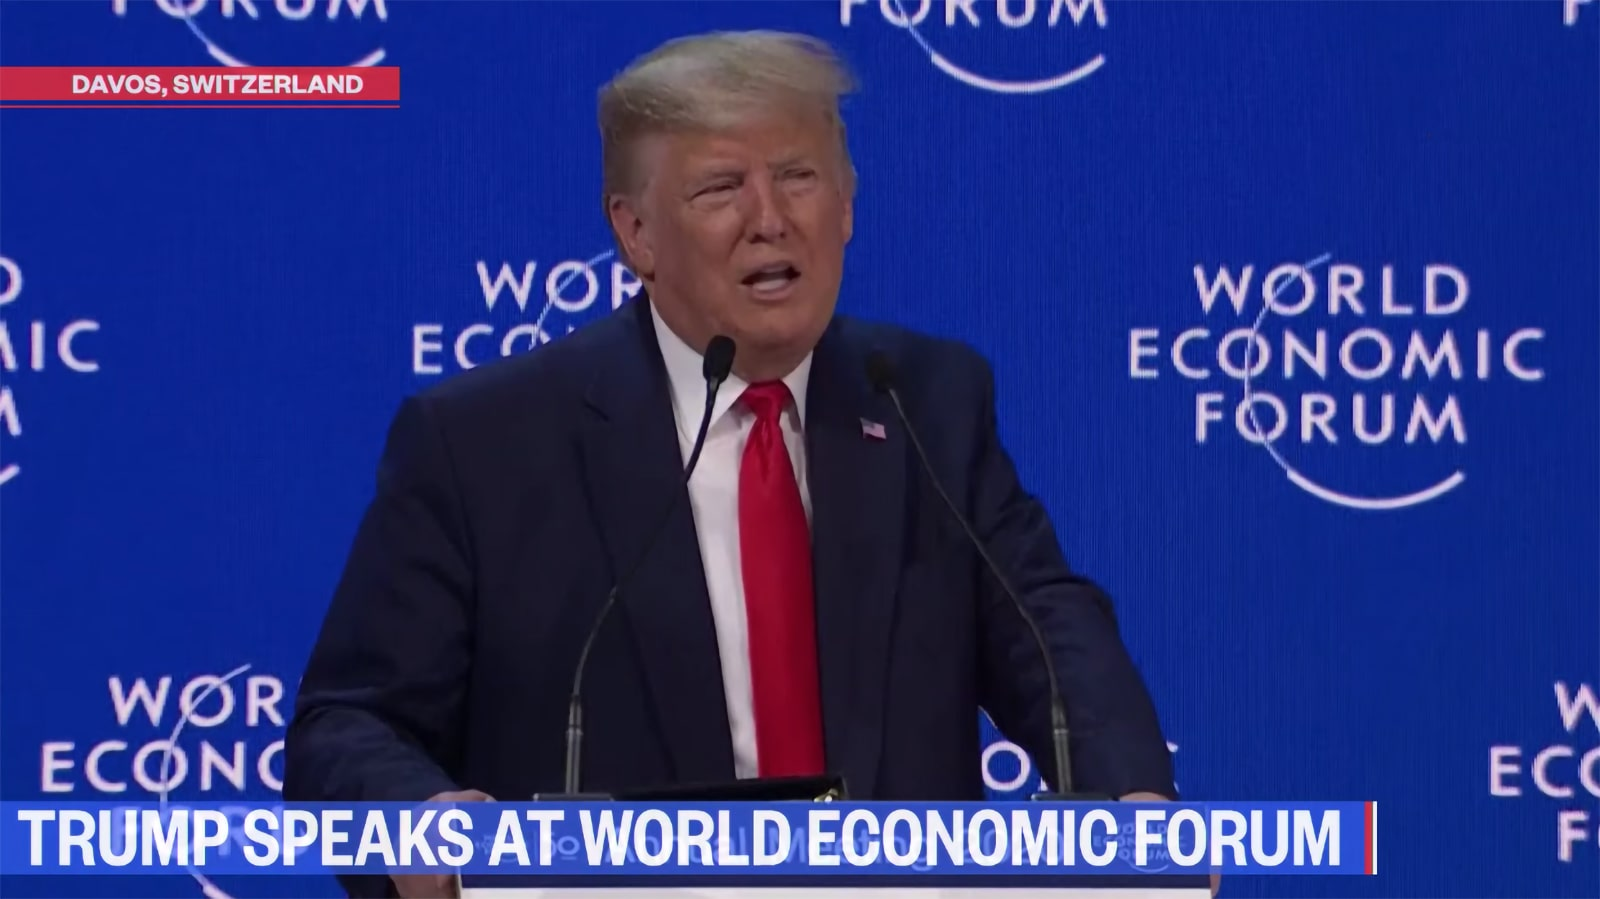 Trump blasts 'radical socialist' climate alarmists as 'heirs of yesterday's foolish fortune-tellers'